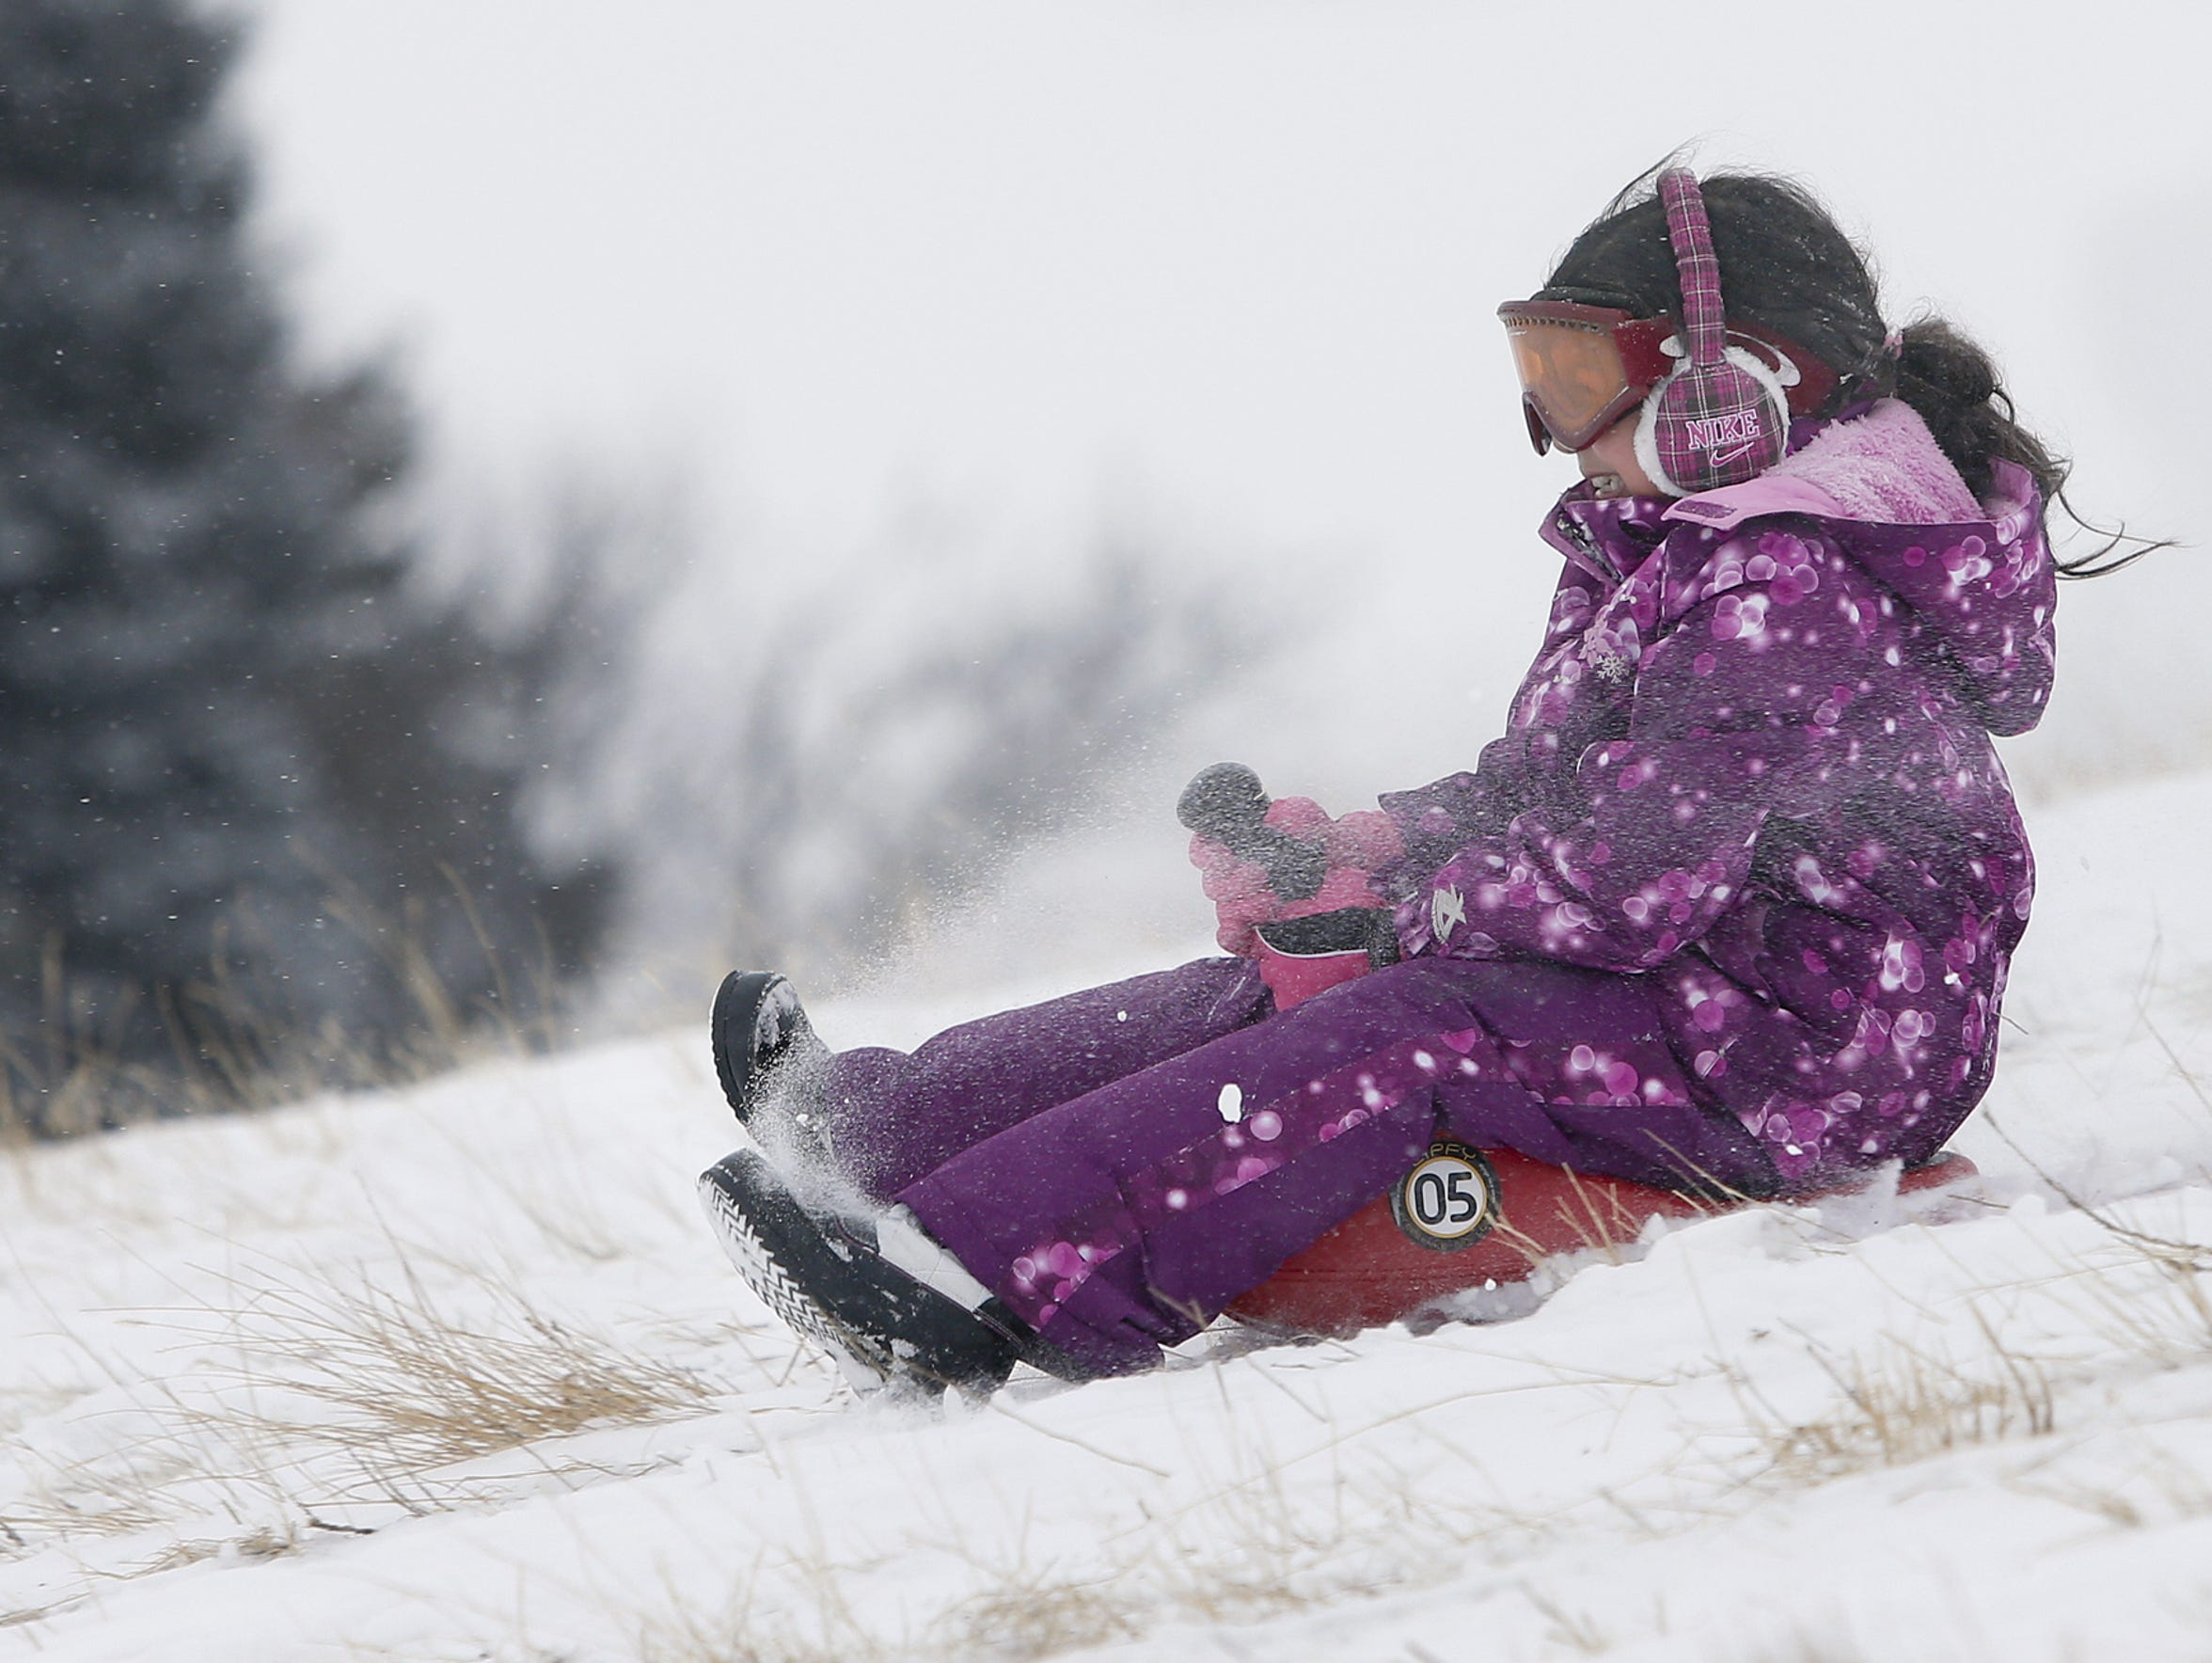 Chloe Montoya holds on tight to her sled as she slides